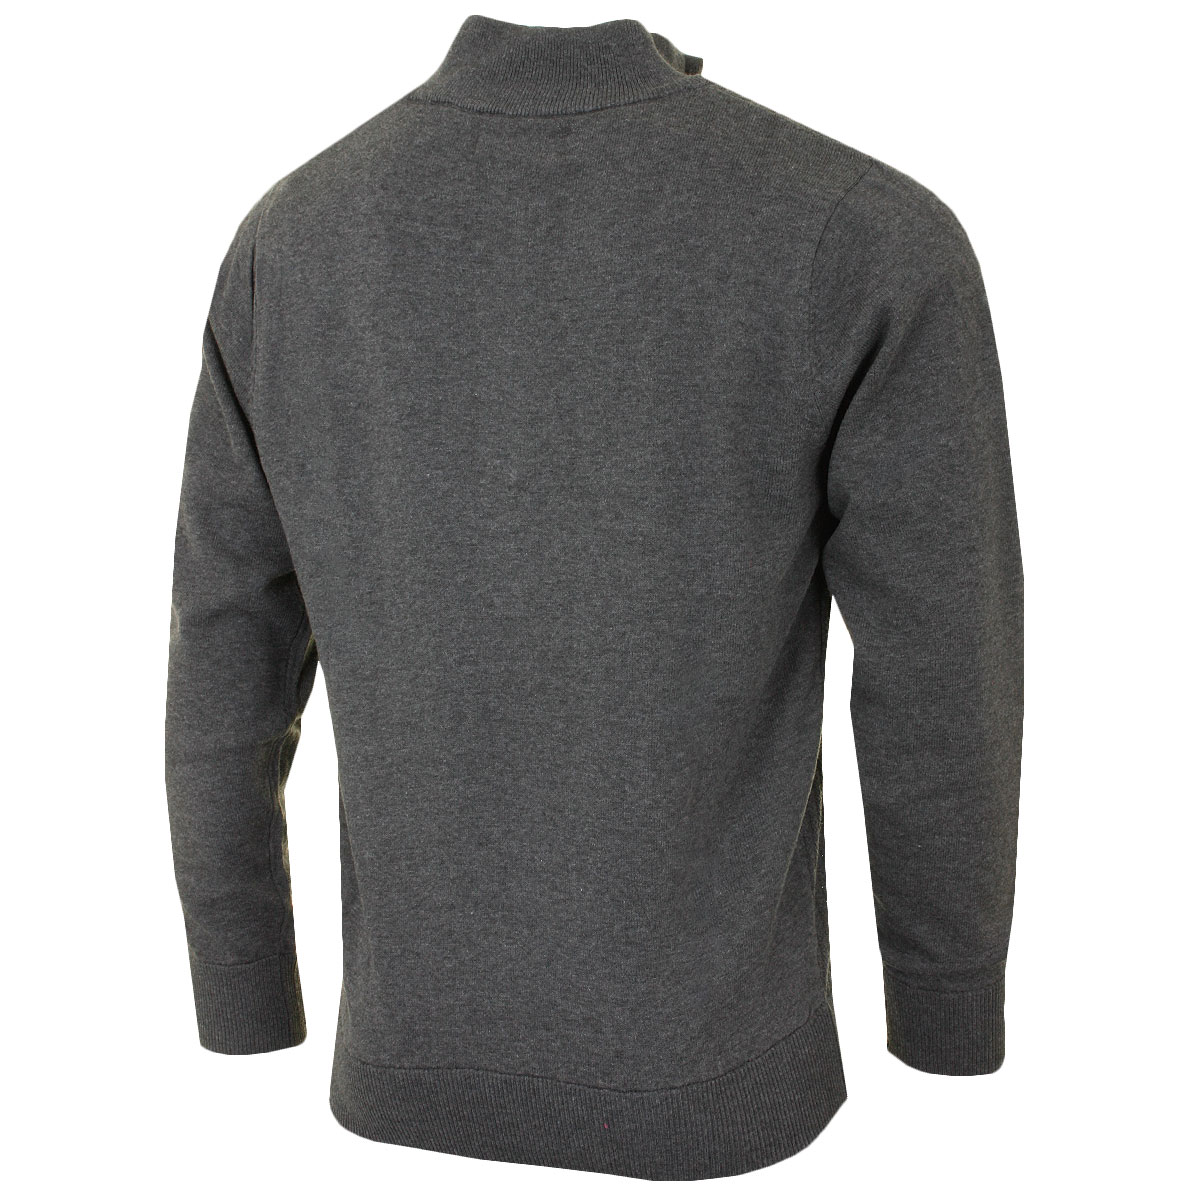 calvin klein golf 2016 mens ck mini cable knit sweater c9211 half zip pullover ebay. Black Bedroom Furniture Sets. Home Design Ideas